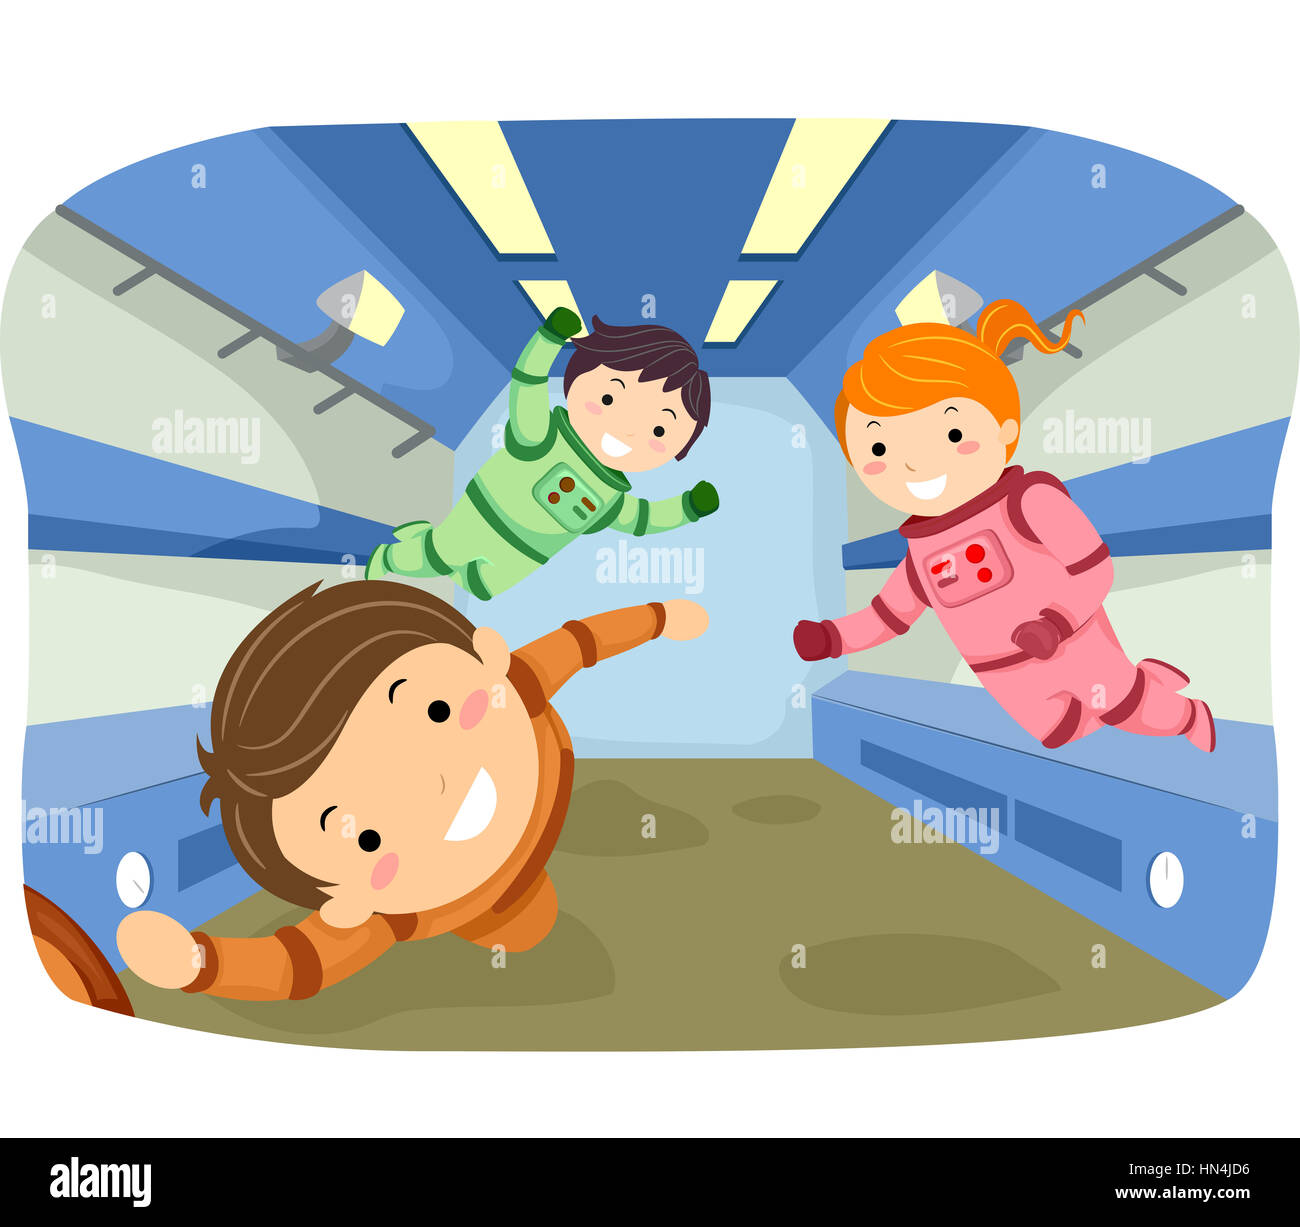 Kinderzimmer Clipart Clipart Kinder Stockfotos Clipart Kinder Bilder Alamy